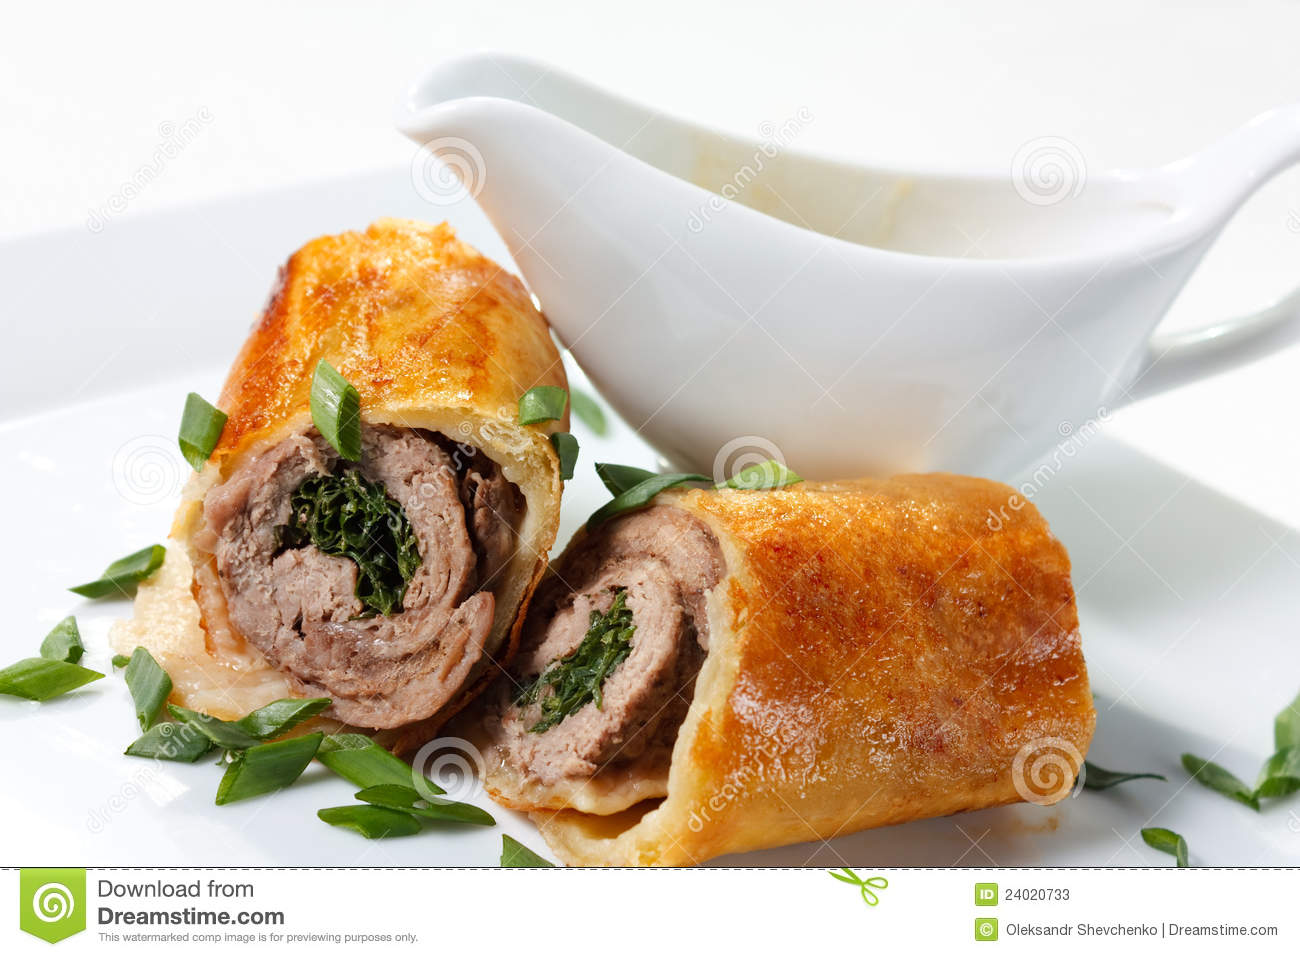 Veal Baked in Puff Dough